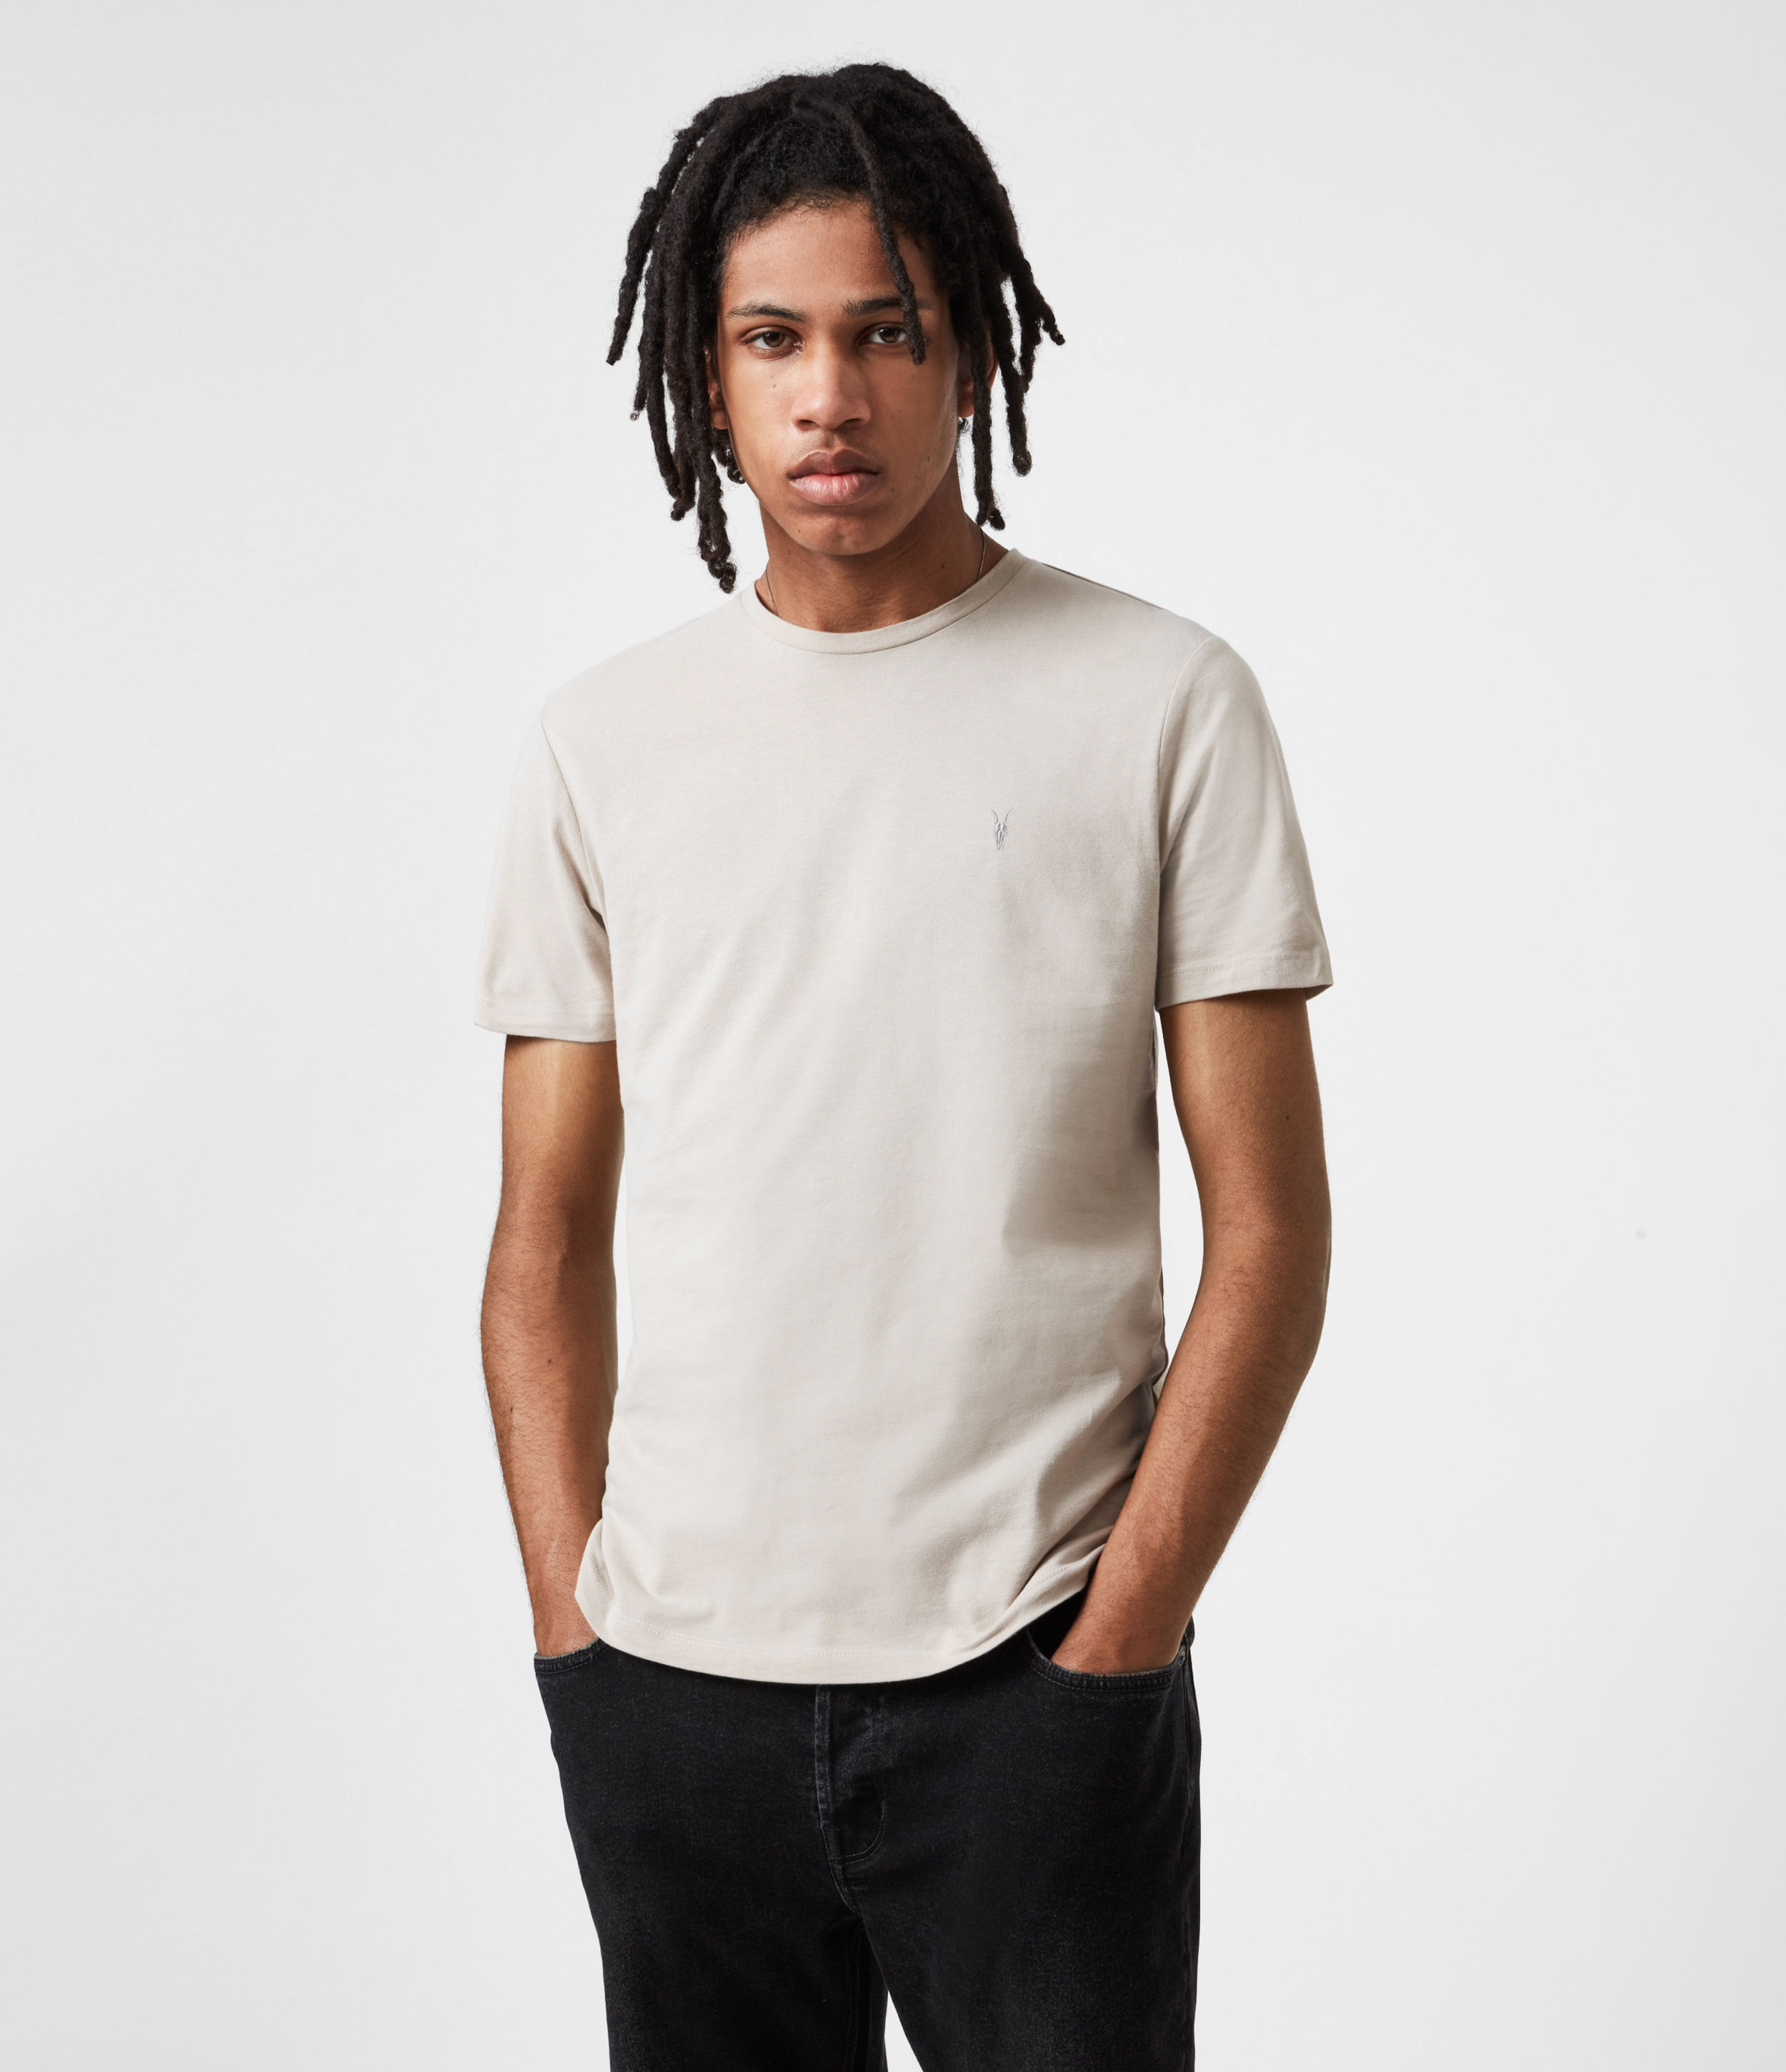 AllSaints Mens Brace Crew T-Shirt, Toasted Taupe, Size: XS